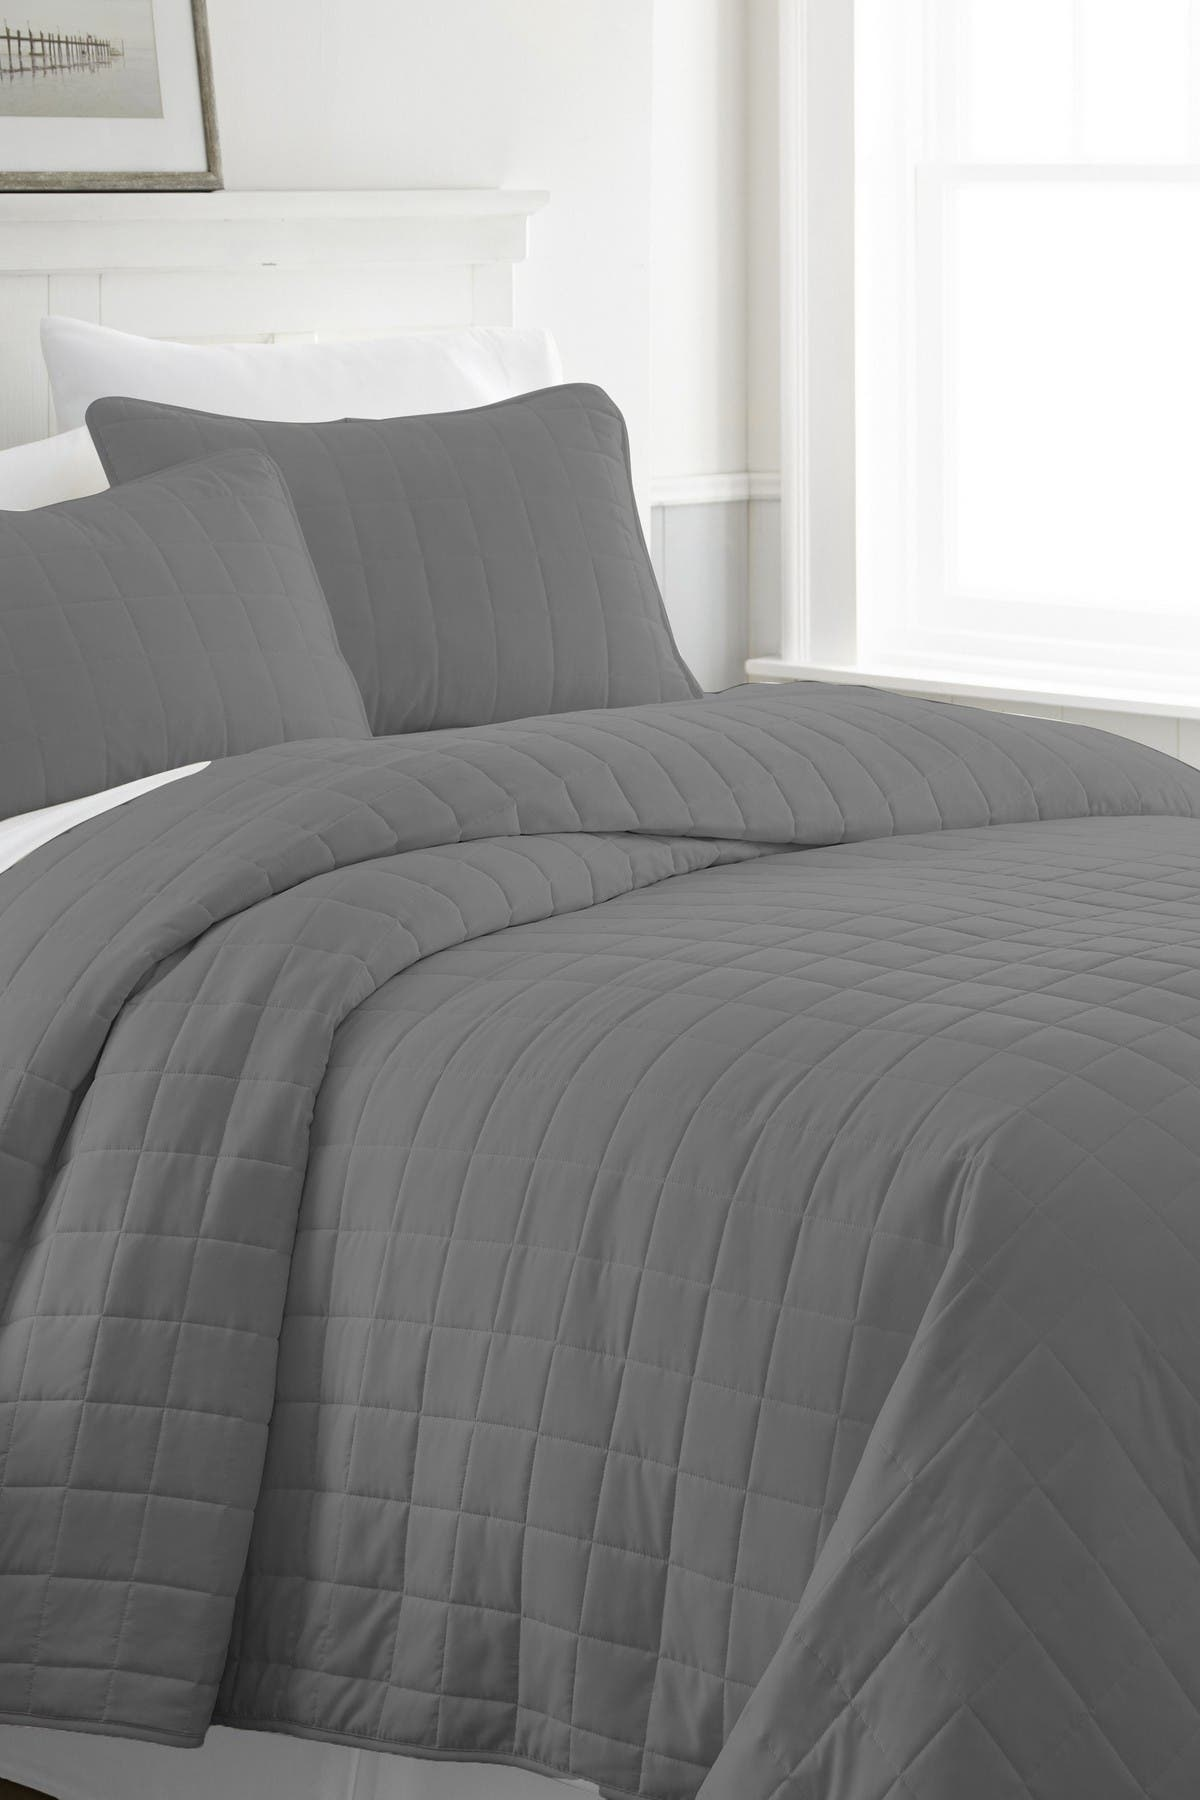 Image of IENJOY HOME Home Spun Premium Ultra Soft Square Pattern Quilted Full/Queen Coverlet Set - Gray